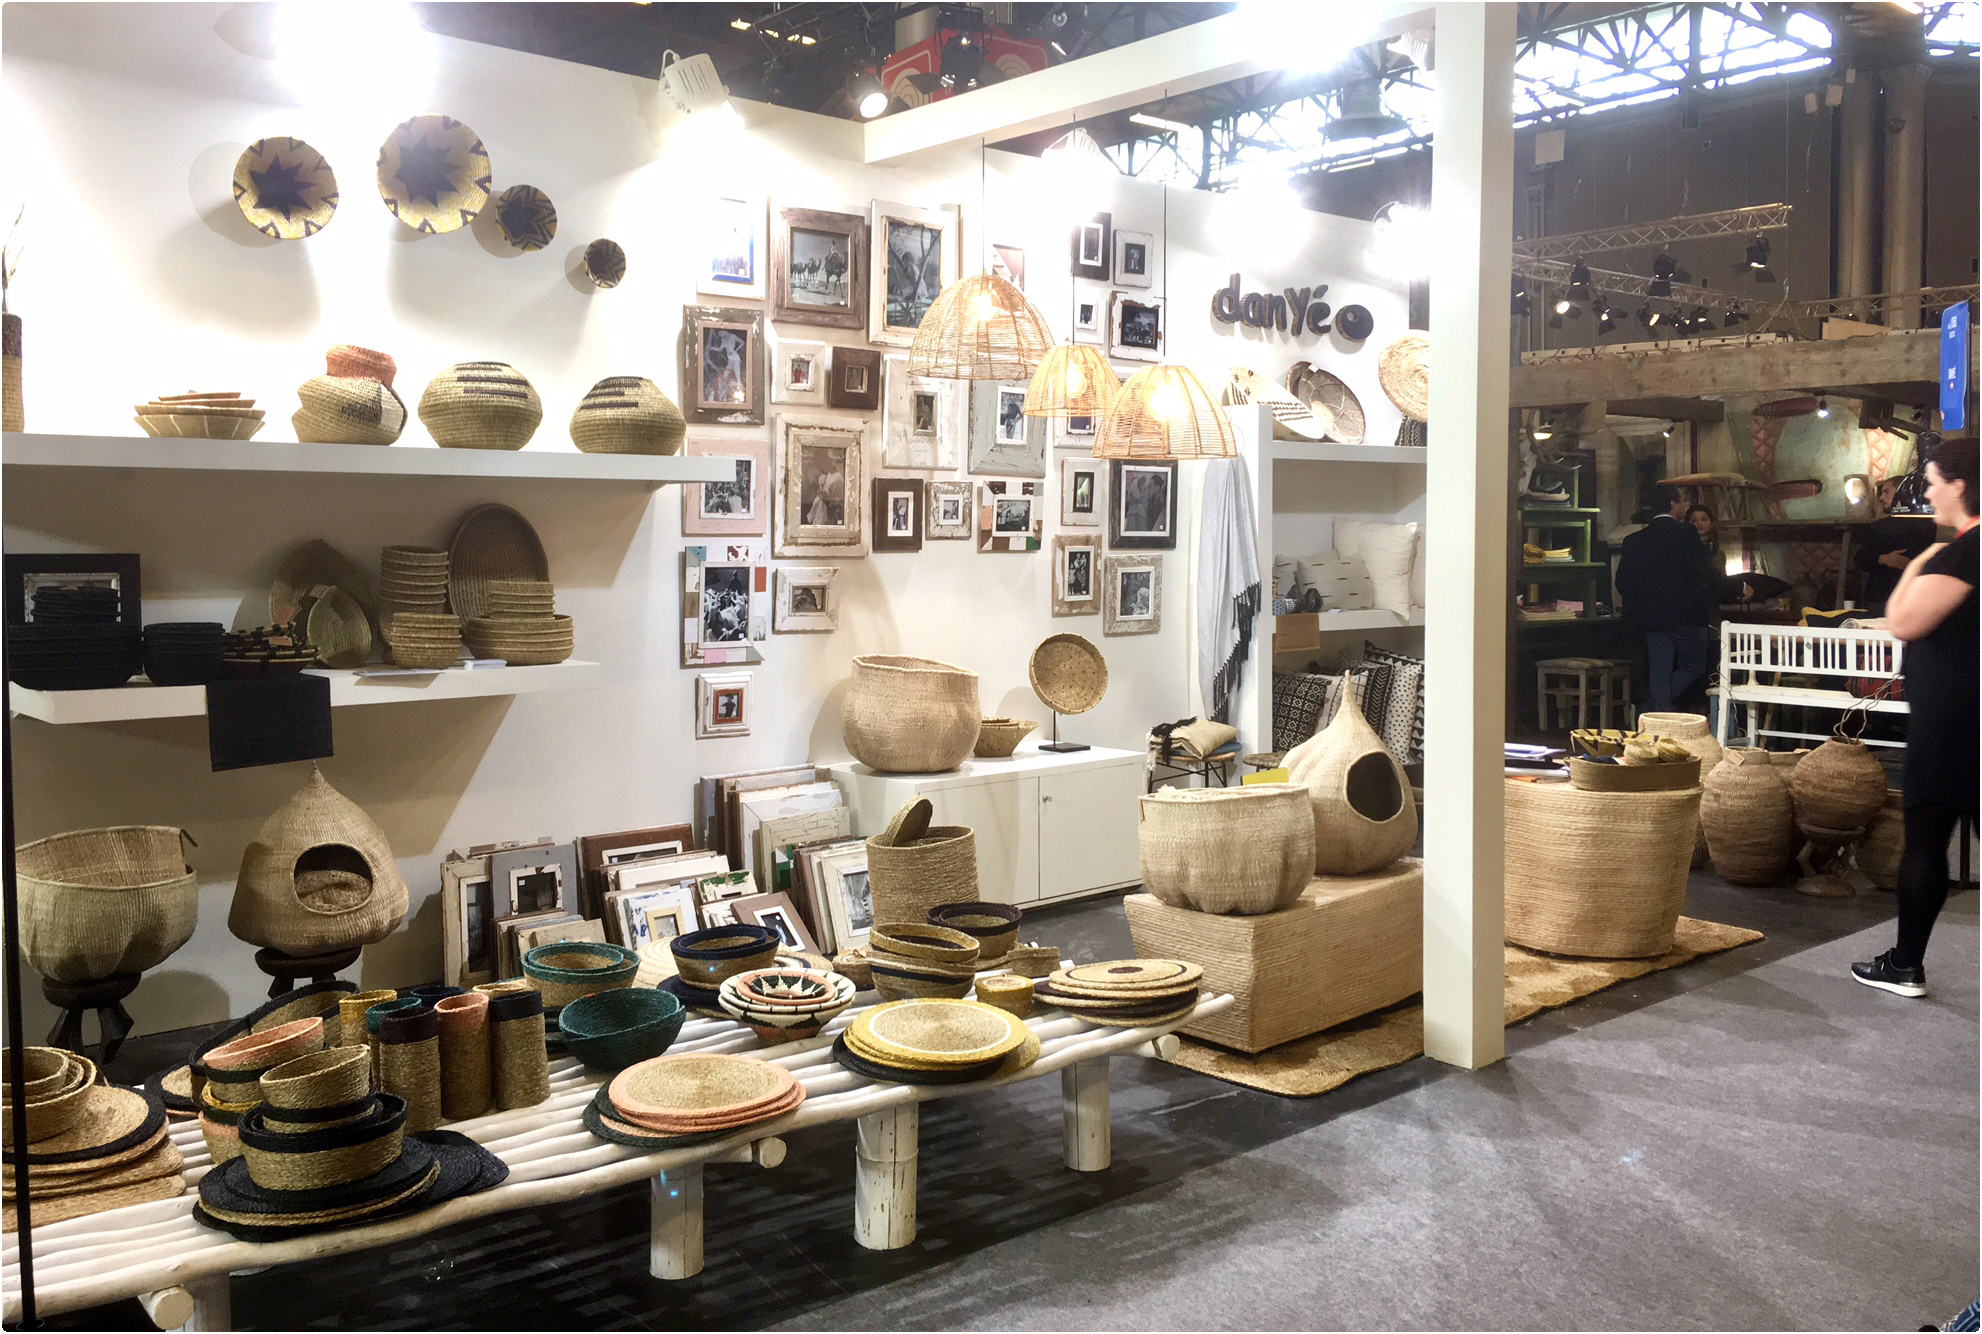 DANYÉ is back from Maison&Objet, Paris.